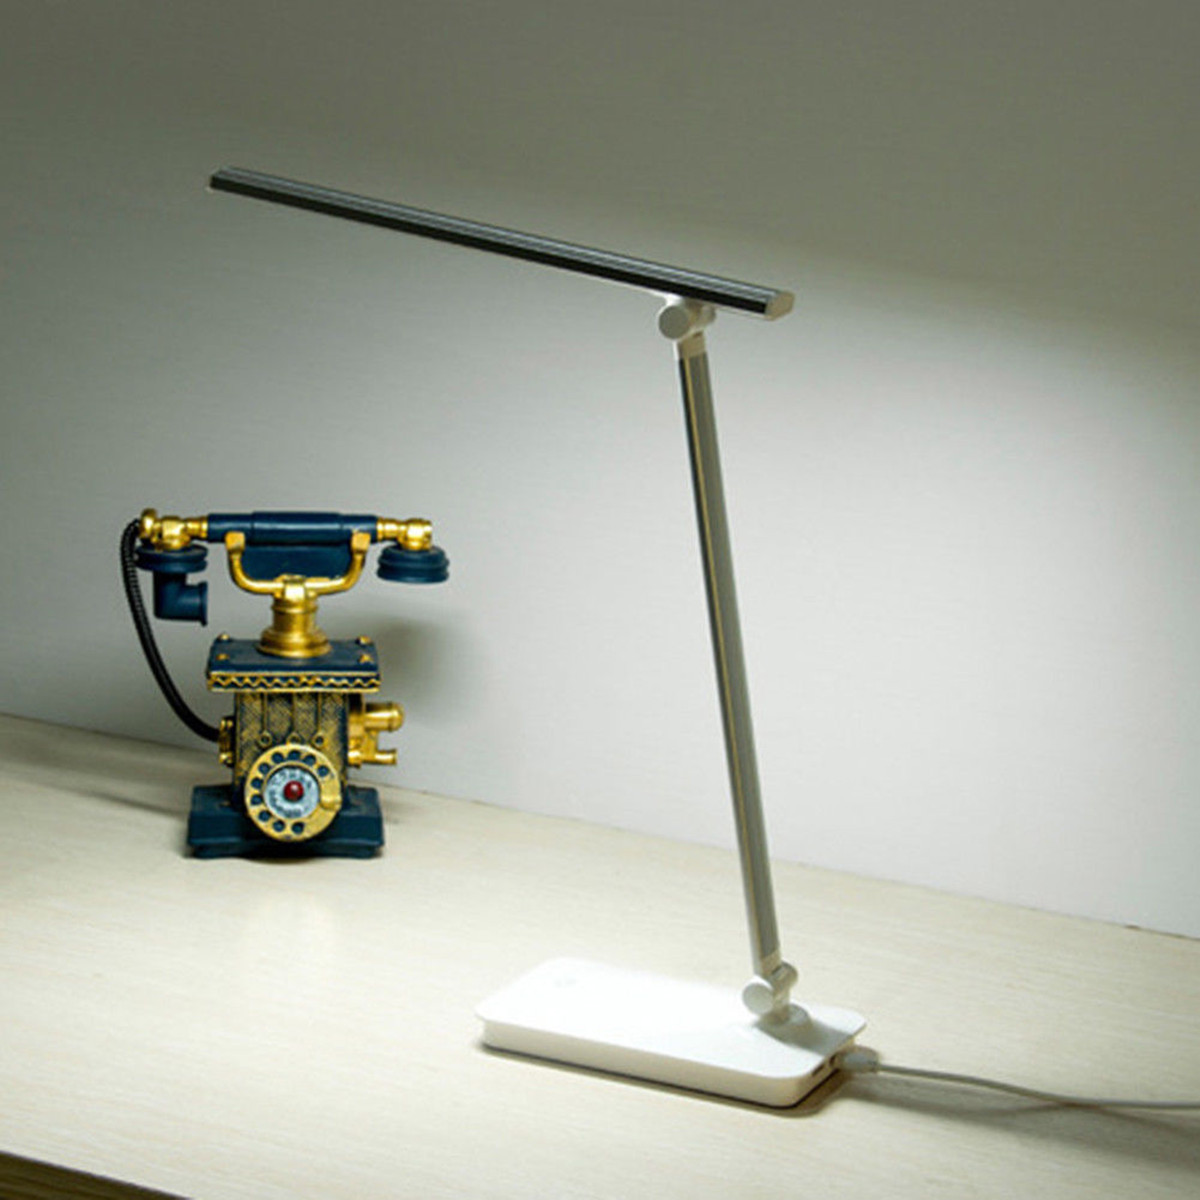 Study Table Light Led Dimmable Desk Lamp Table Light Usb Eye Care Bedside